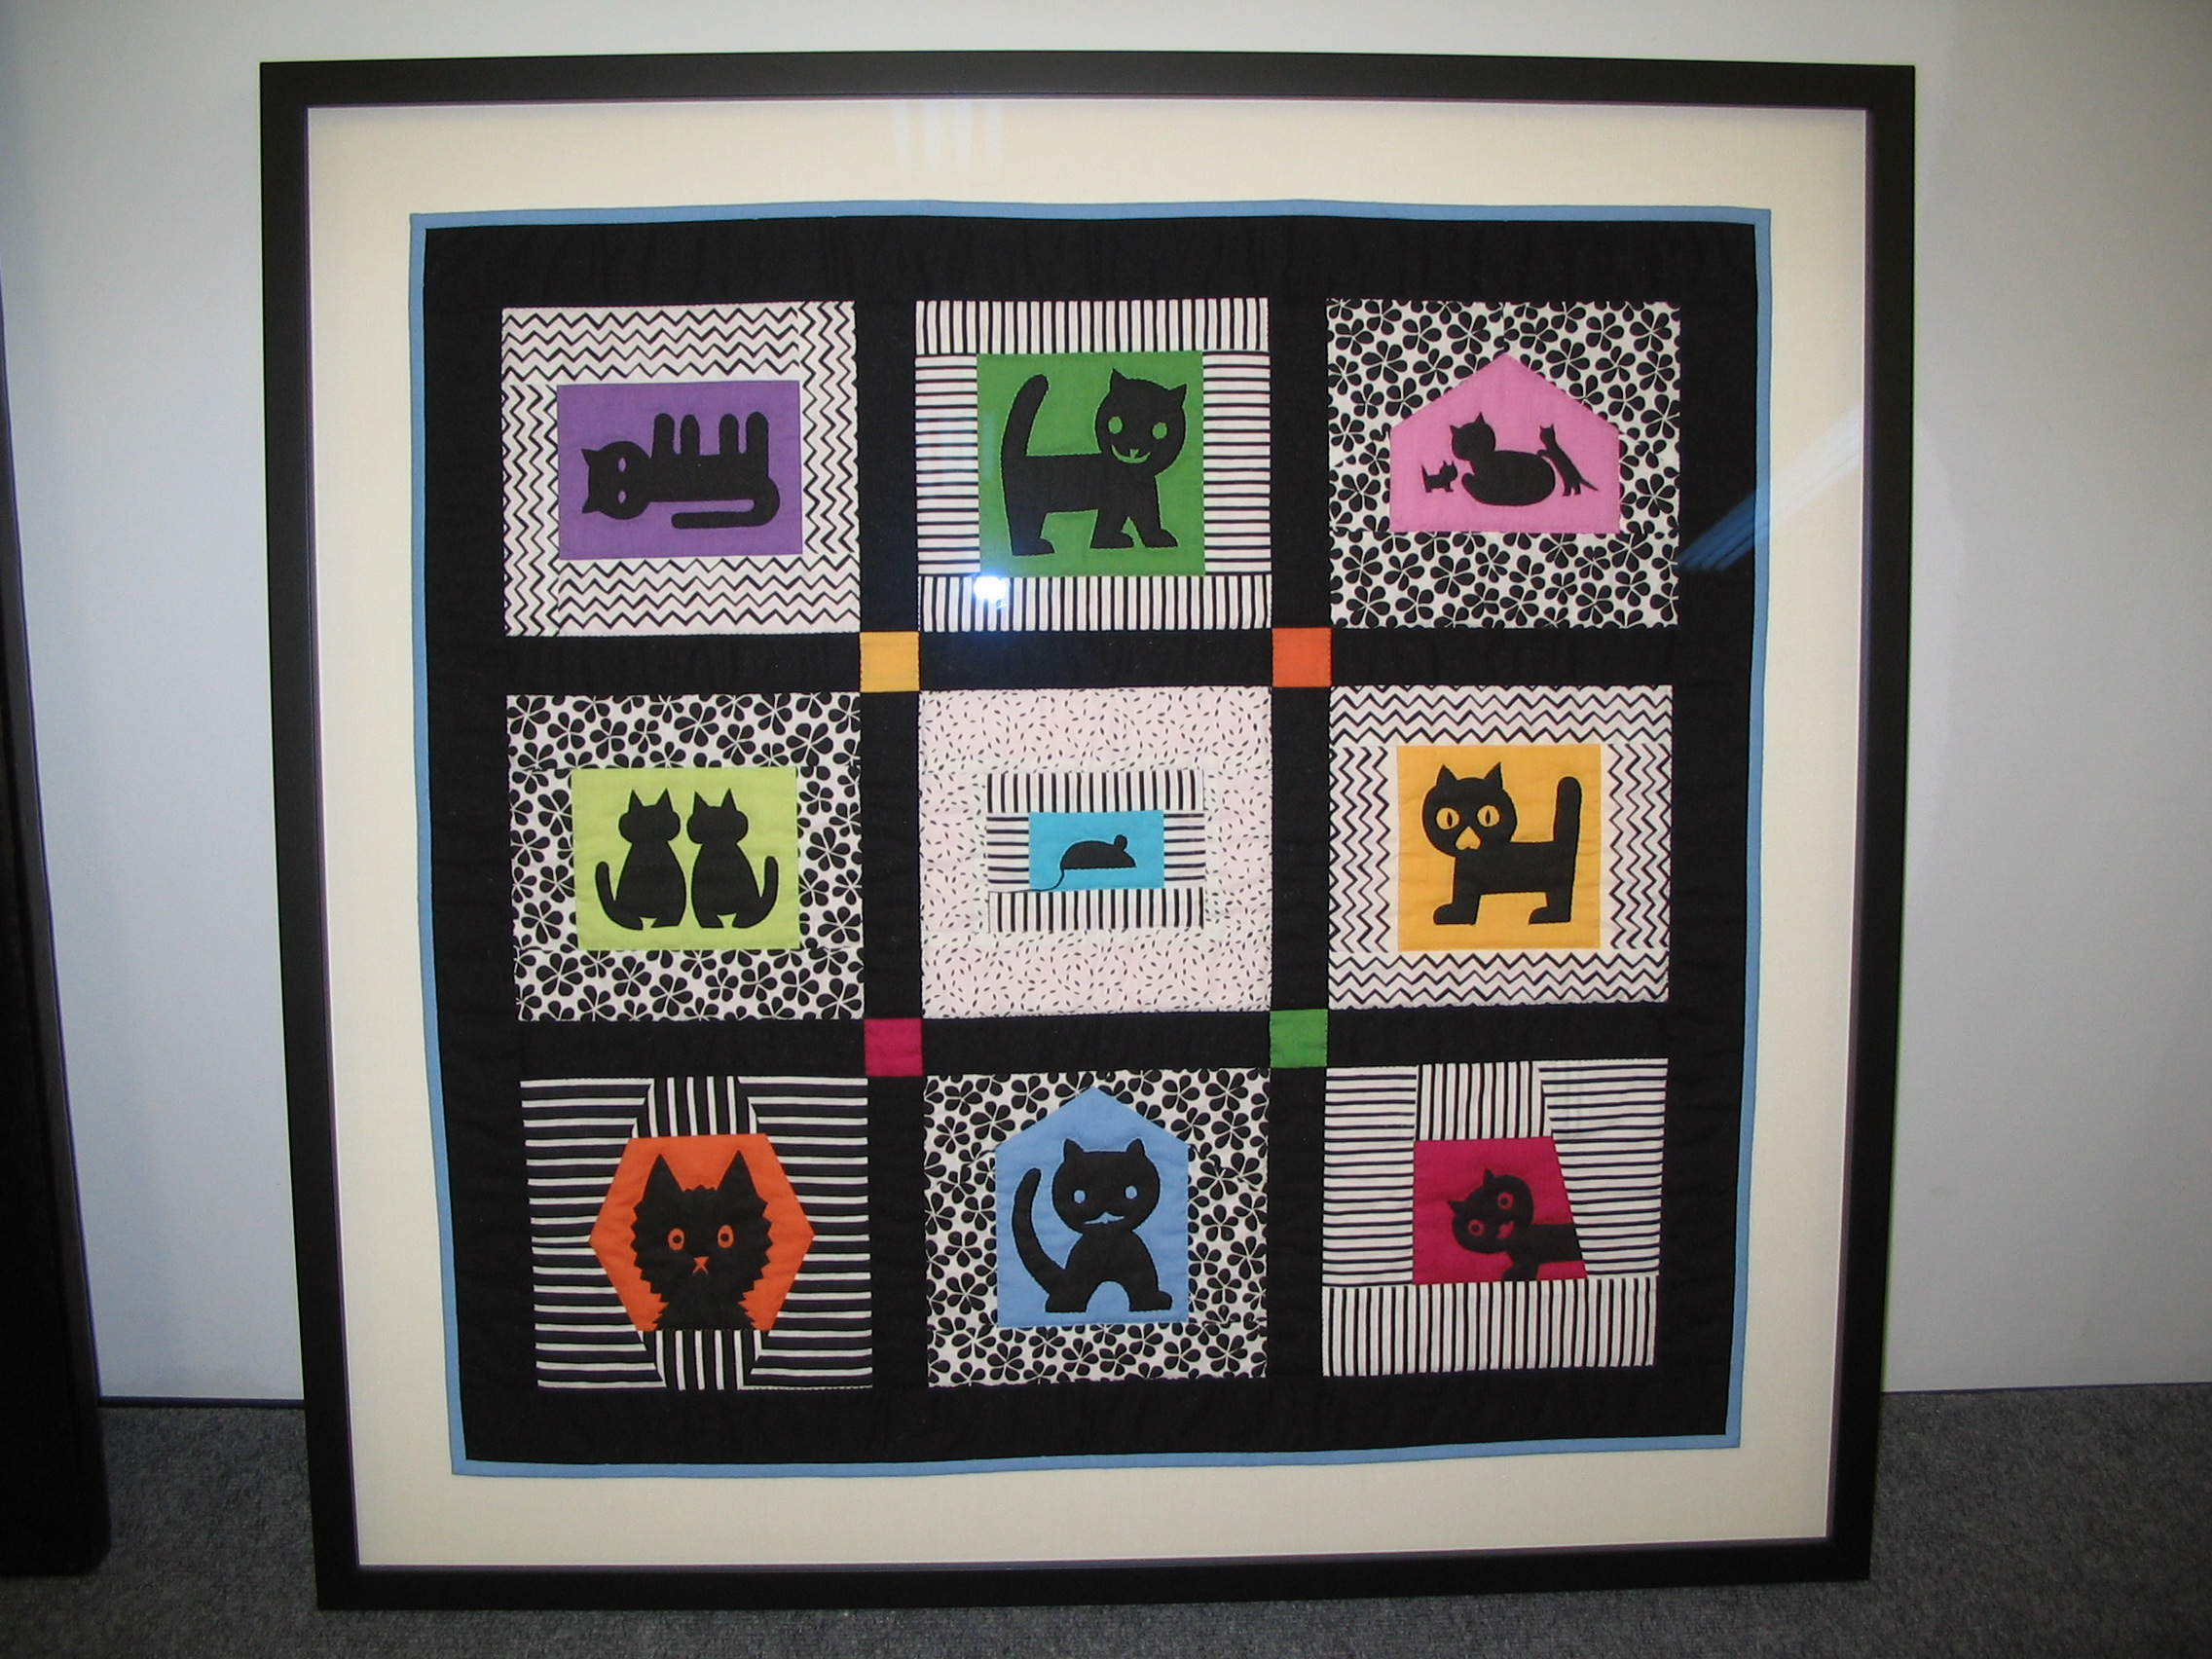 Cats framed by The Framemakers